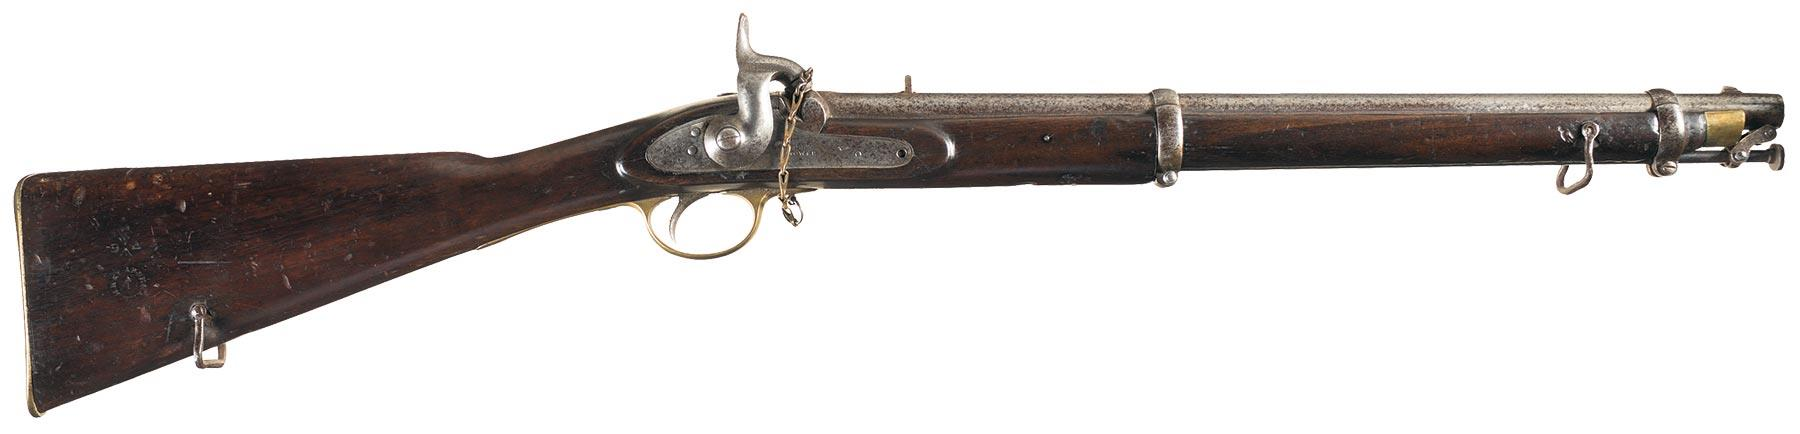 Tower Pattern 1856 Percussion Cavalry Carbine with History